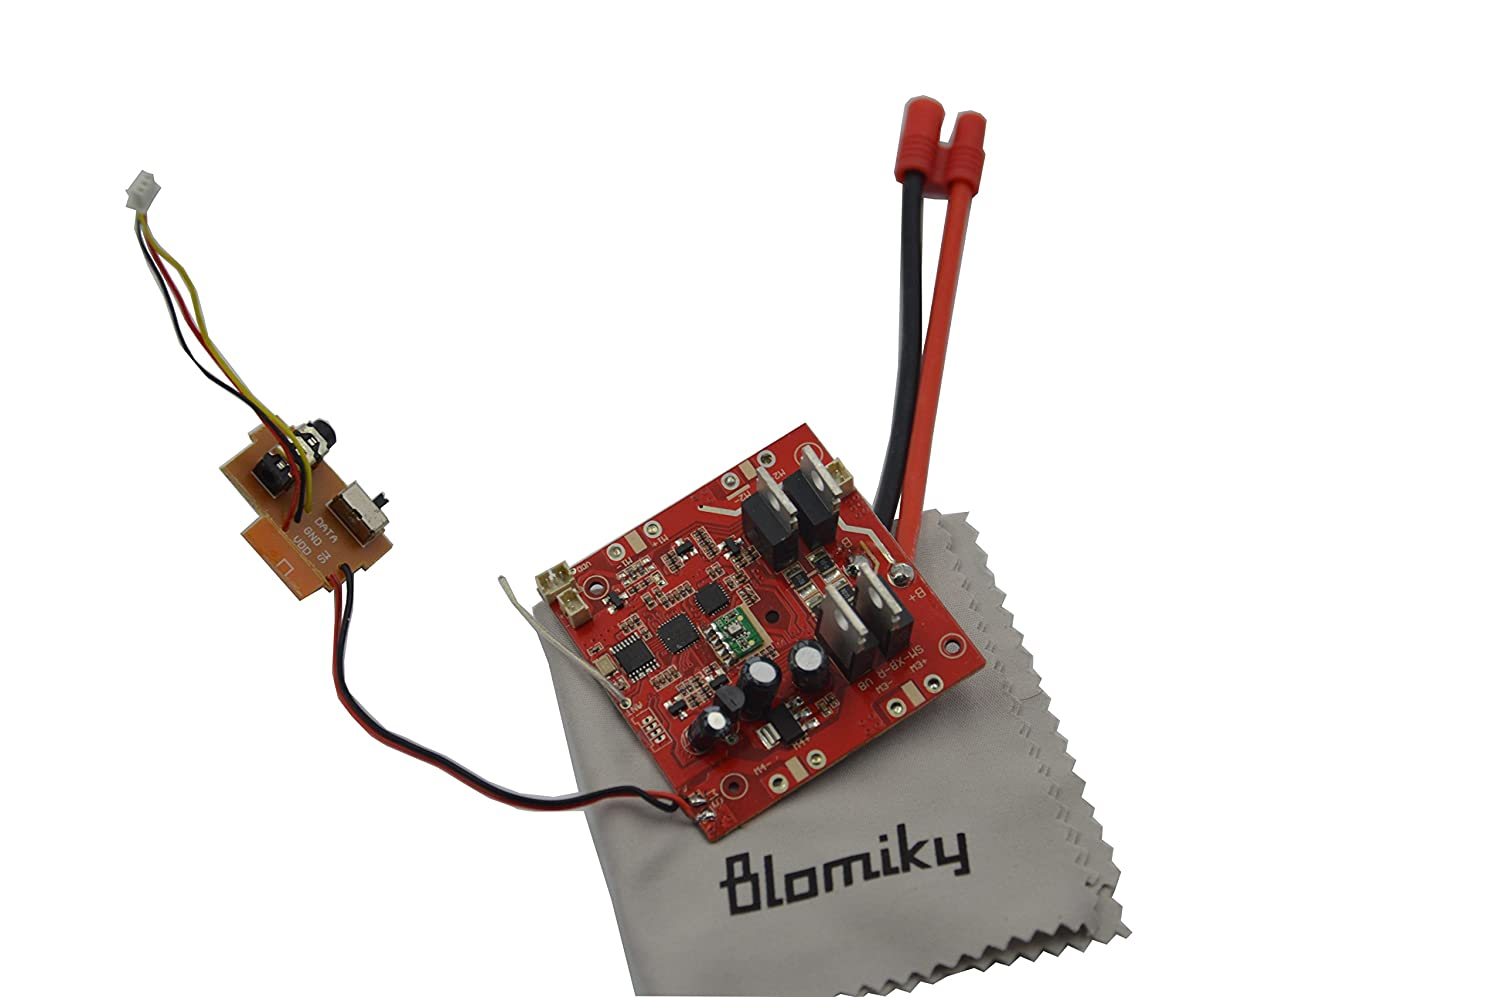 Blomiky Receiver Pcb Board For Syma X8hc X8hw X8hg Rc Quadcopter X8h Remote Control Drone Circuit Radio Receivers Amazon Canada